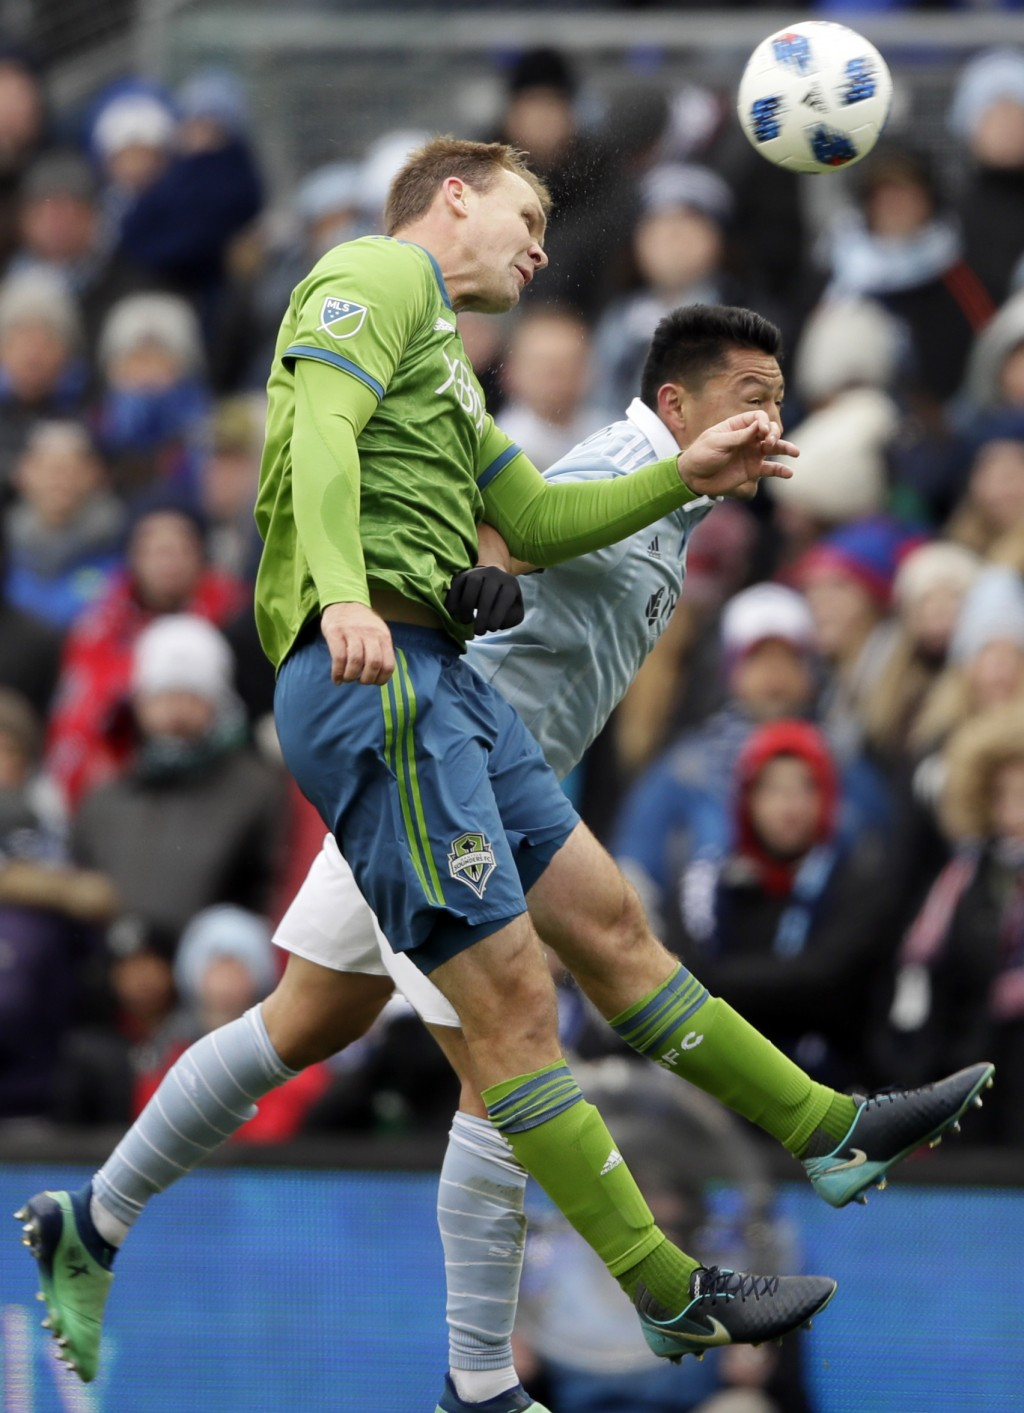 Seattle Sounders defender Chad Marshall, front, heads the ball against Sporting Kansas City midfielder Roger Espinoza, back, during the first half of